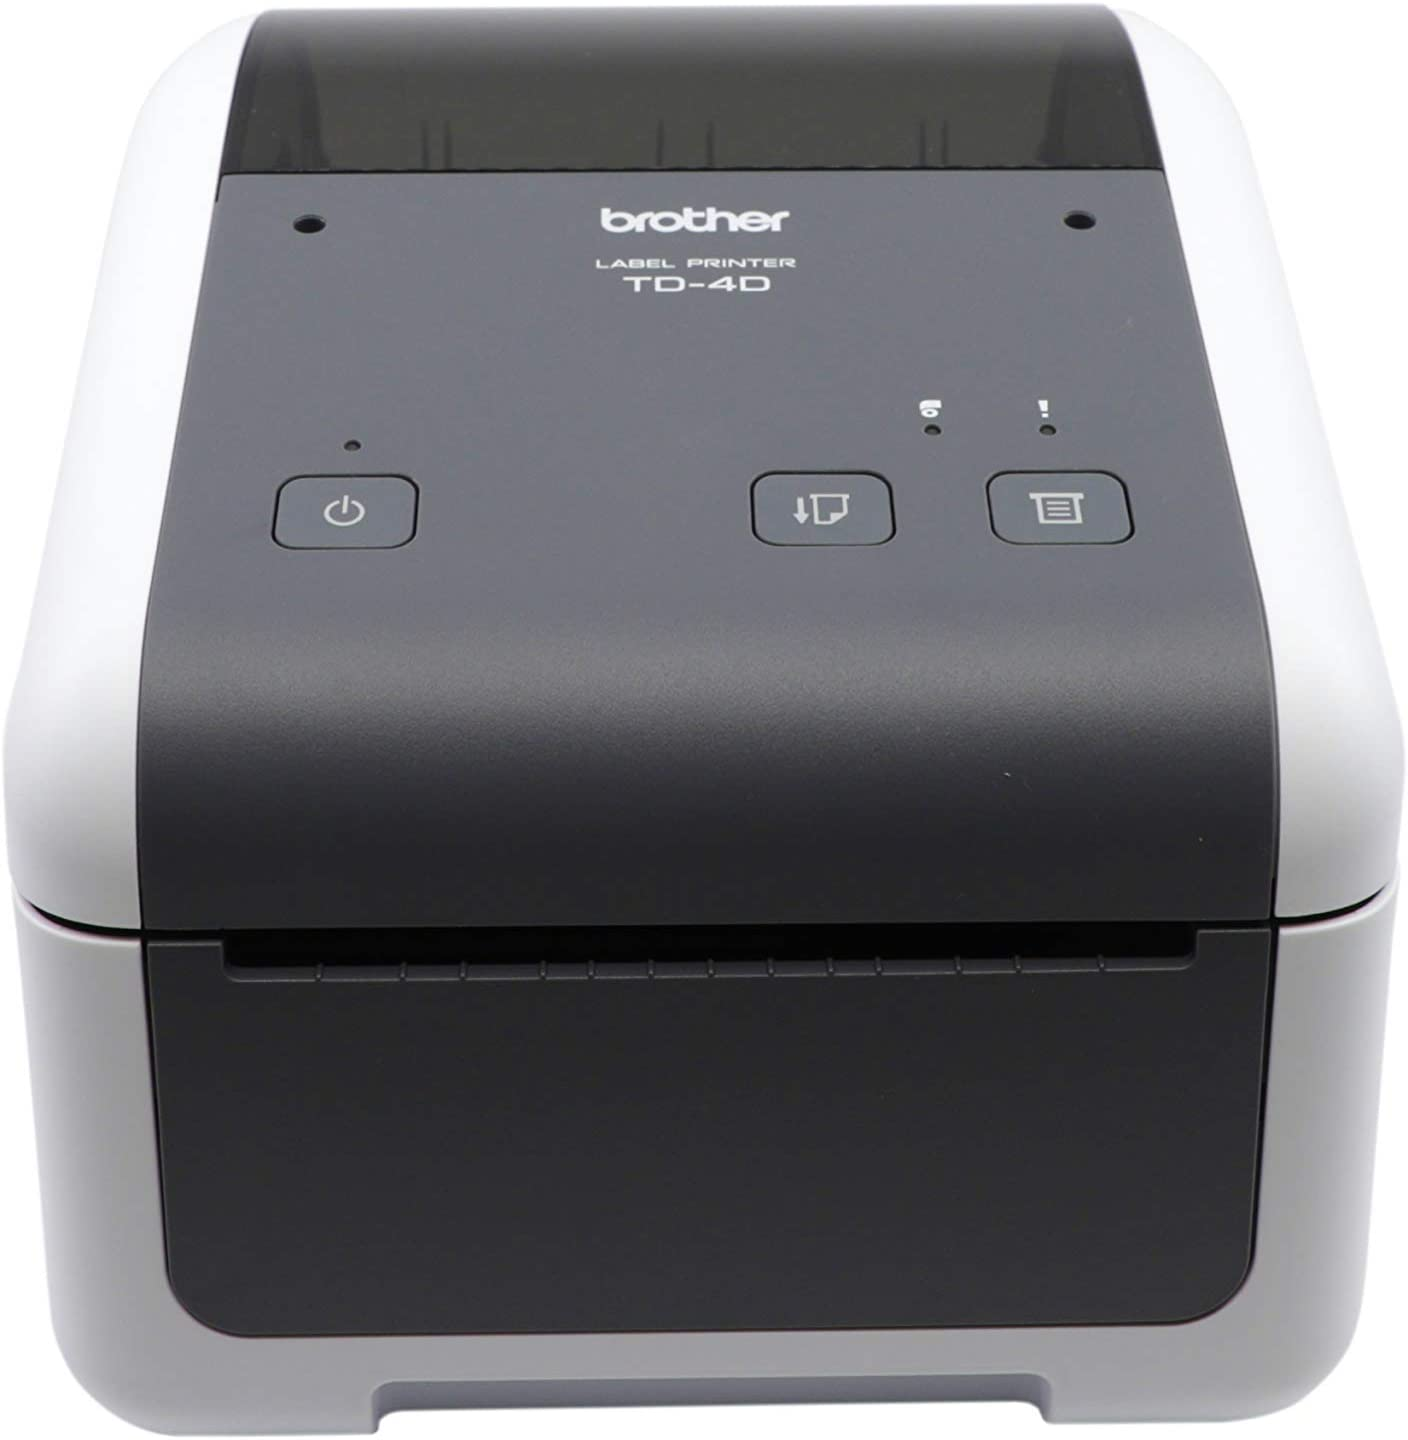 Brother TD4410D 4-inch Thermal Desktop Barcode and Label Printer, for Labels, Barcodes, Receipts and Tags, 203 dpi, 8 IPS, Standard USB and Serial